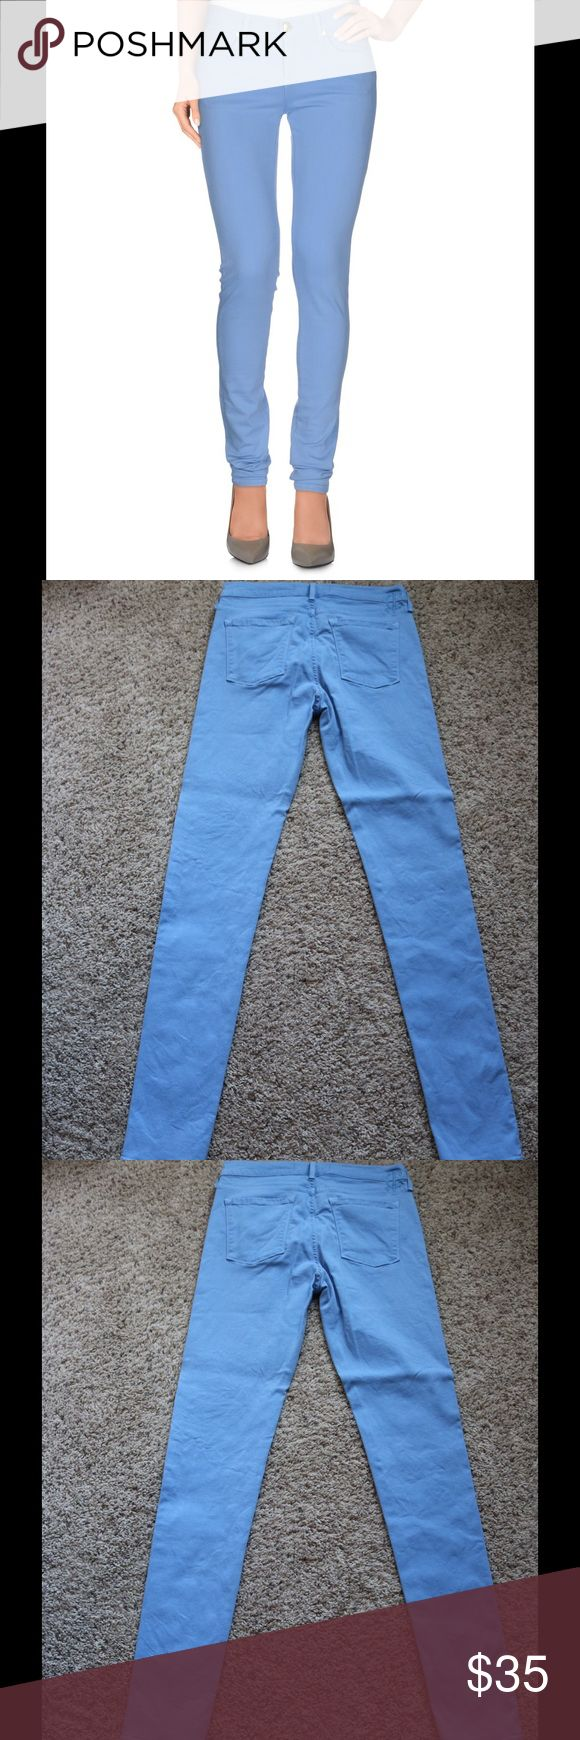 Juicy Couture Light Blue Skinny Jeans EUC Juicy Couture Light Blue Skinny Jeans. Color is a light blue than a denim color. Only worn twice - Like new condition. Juicy Couture Jeans Skinny